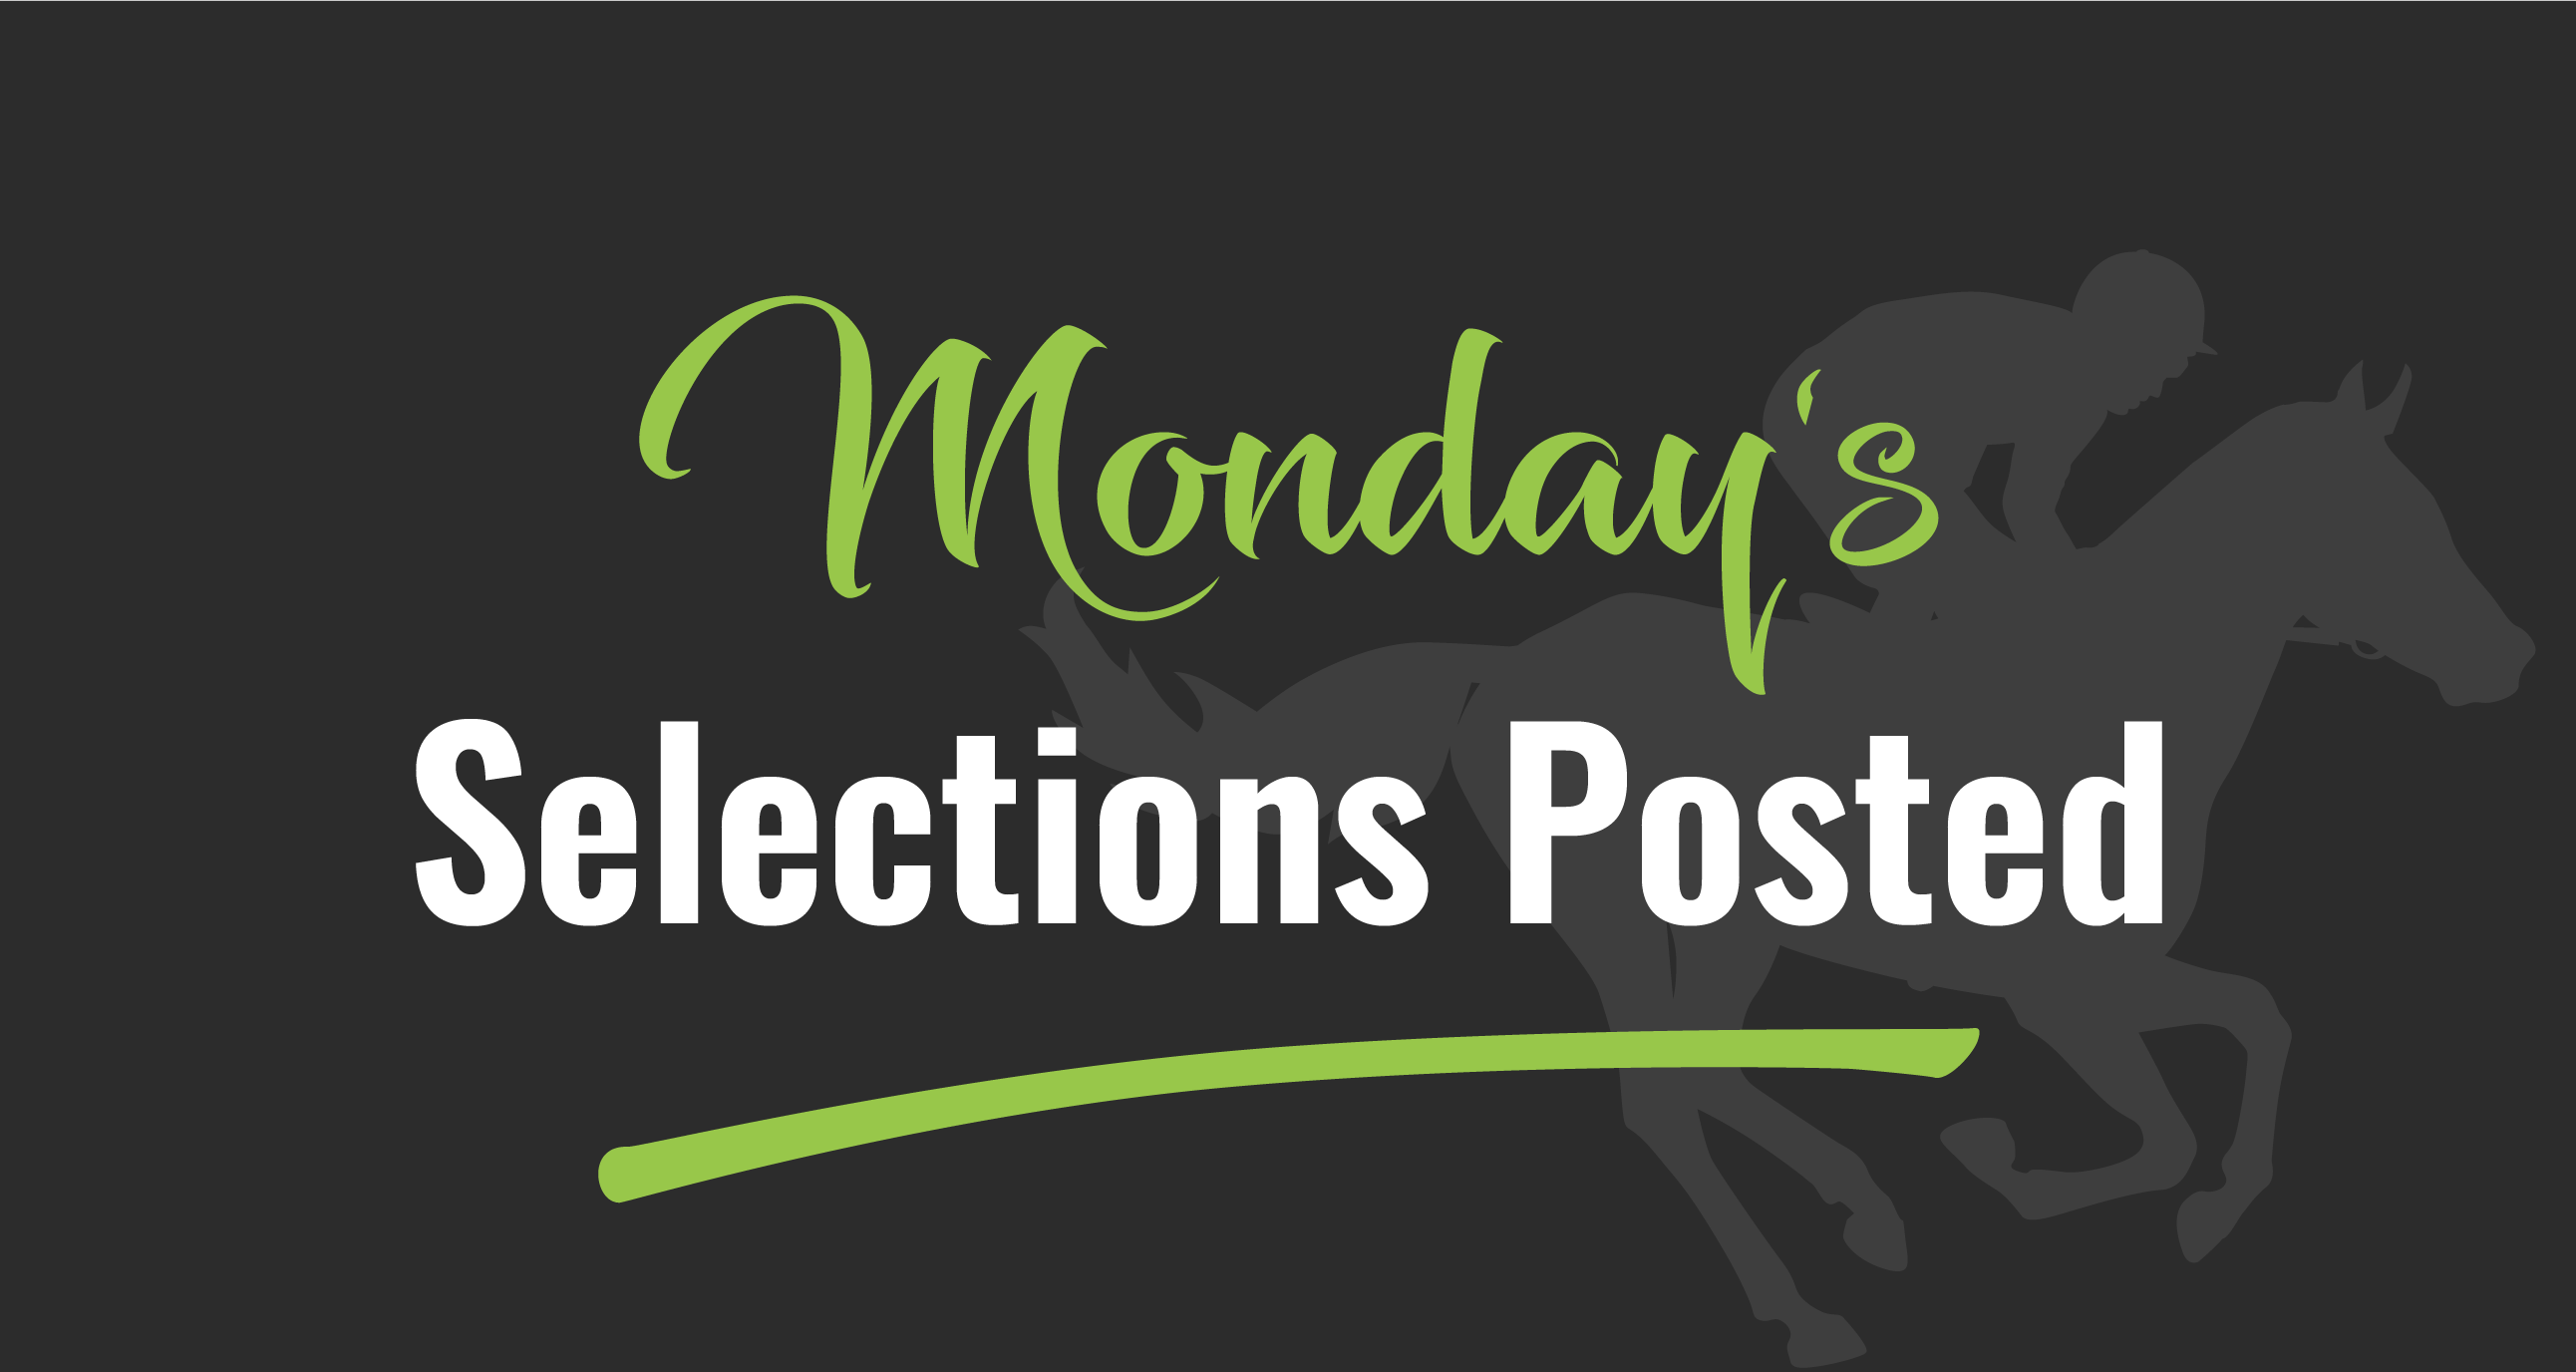 Selections for Monday 19 August 2019